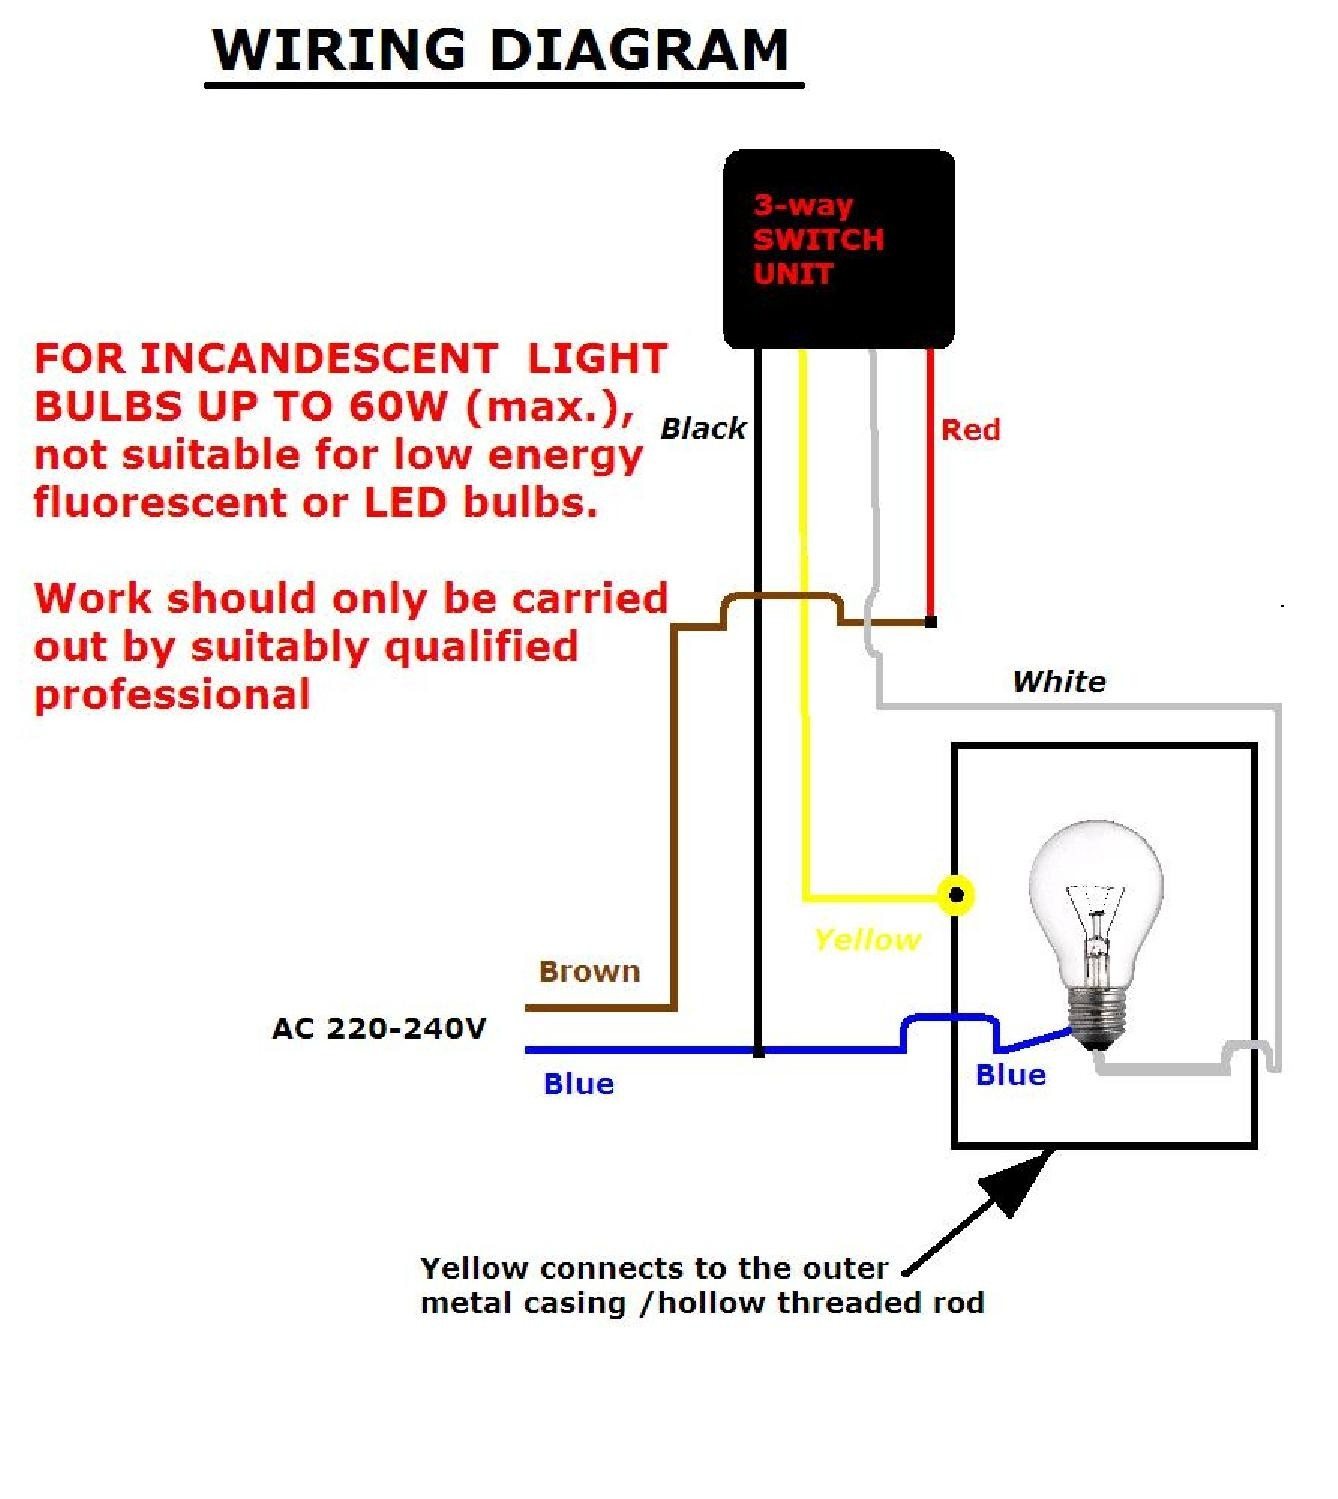 hight resolution of touch dimmer wiring diagram to wire a ceiling light bulb socket also 3 way dimmer